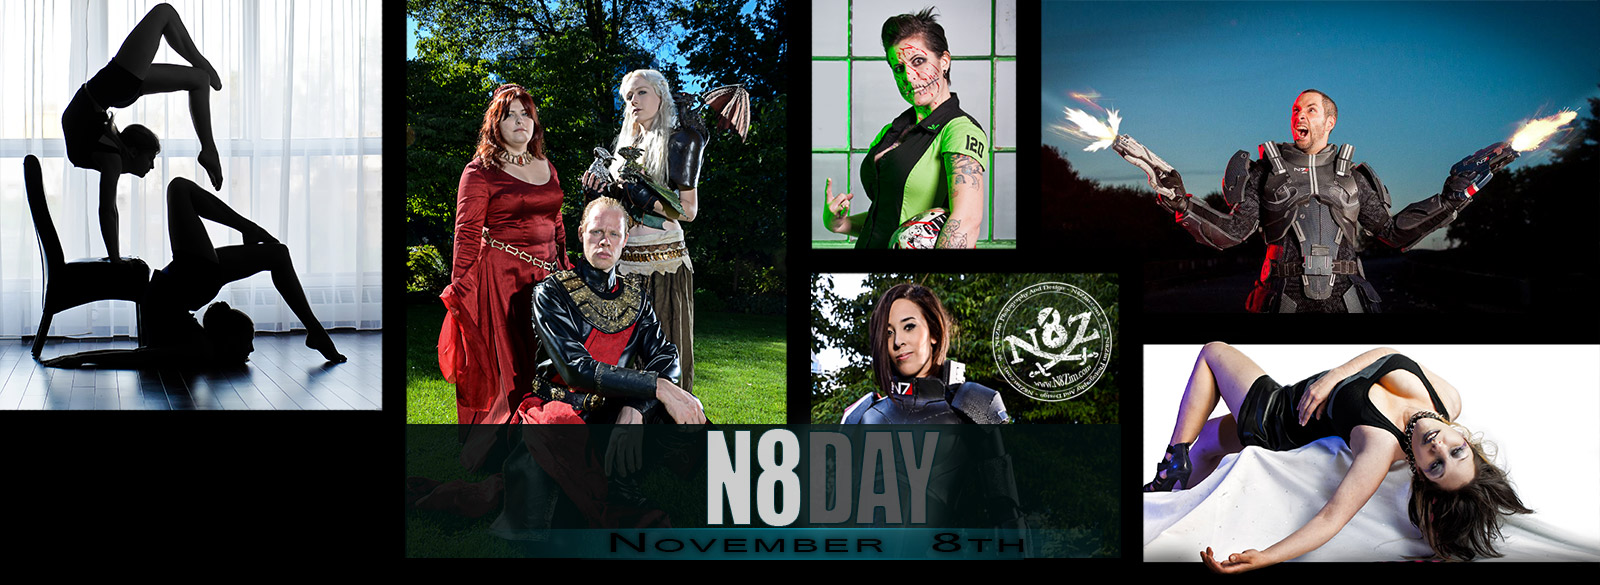 N8 Day 2012 – Year in Review